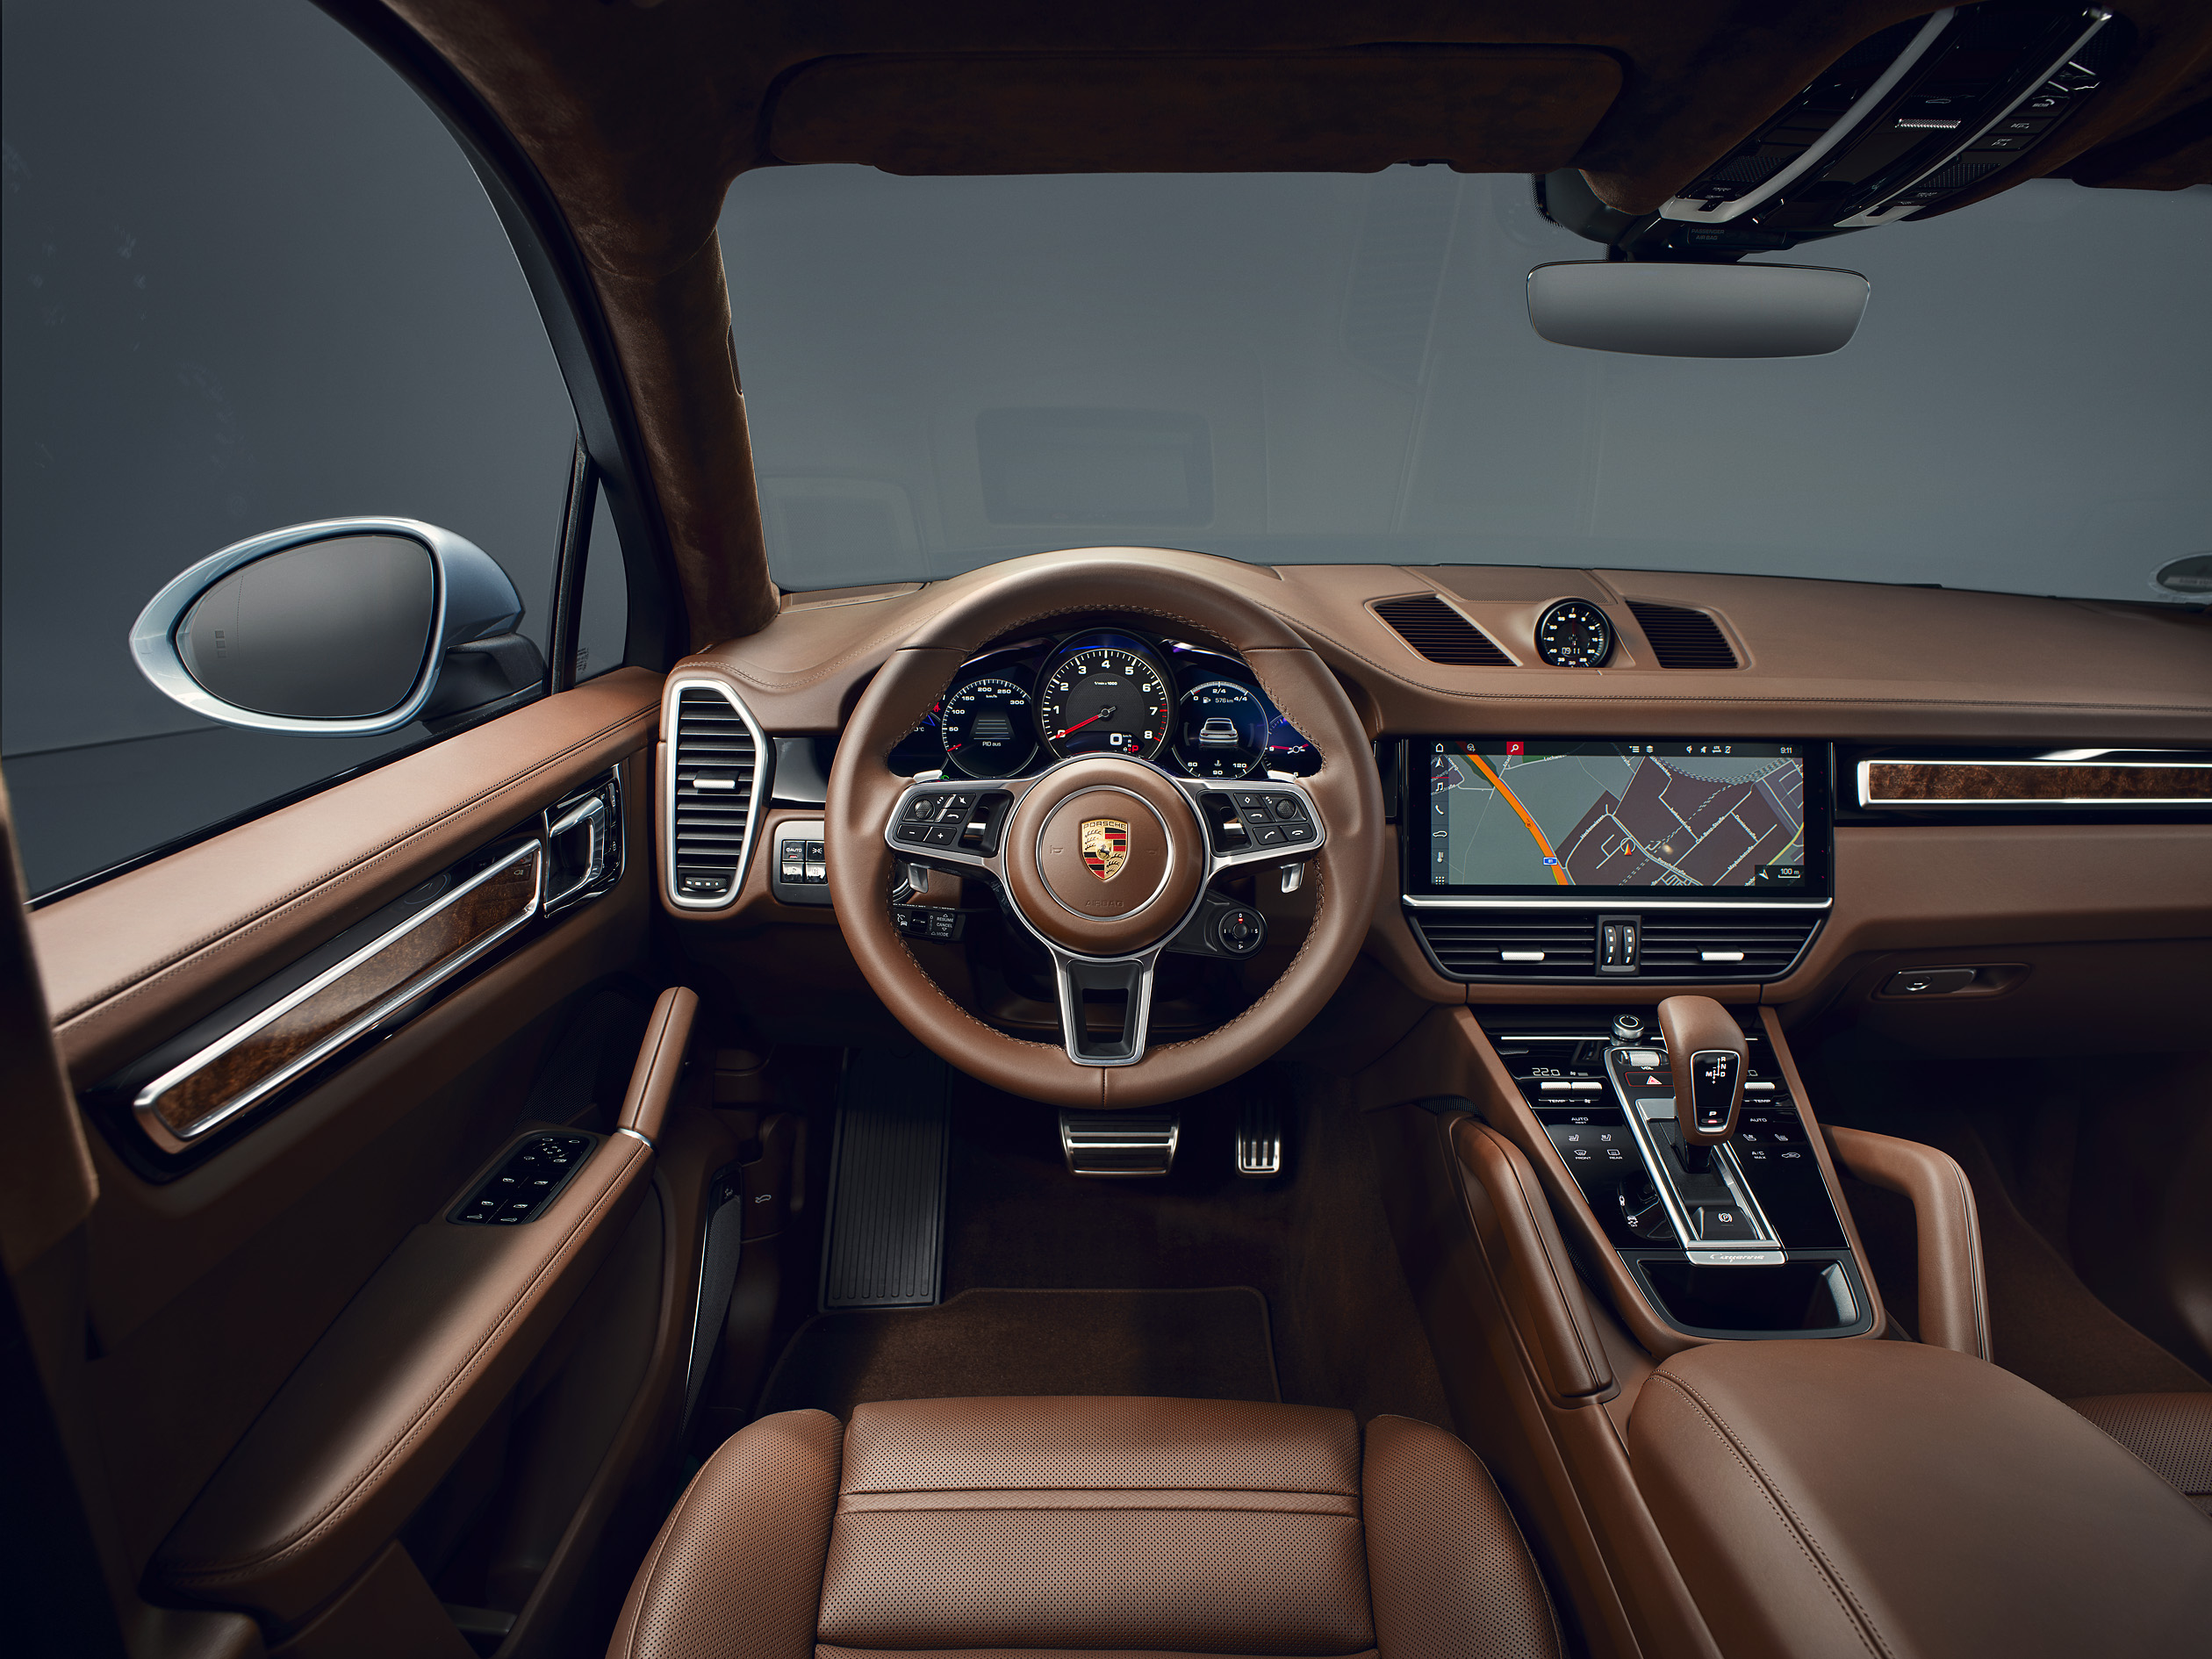 The New Porsche Cayenne S Coupe Now Available On Order